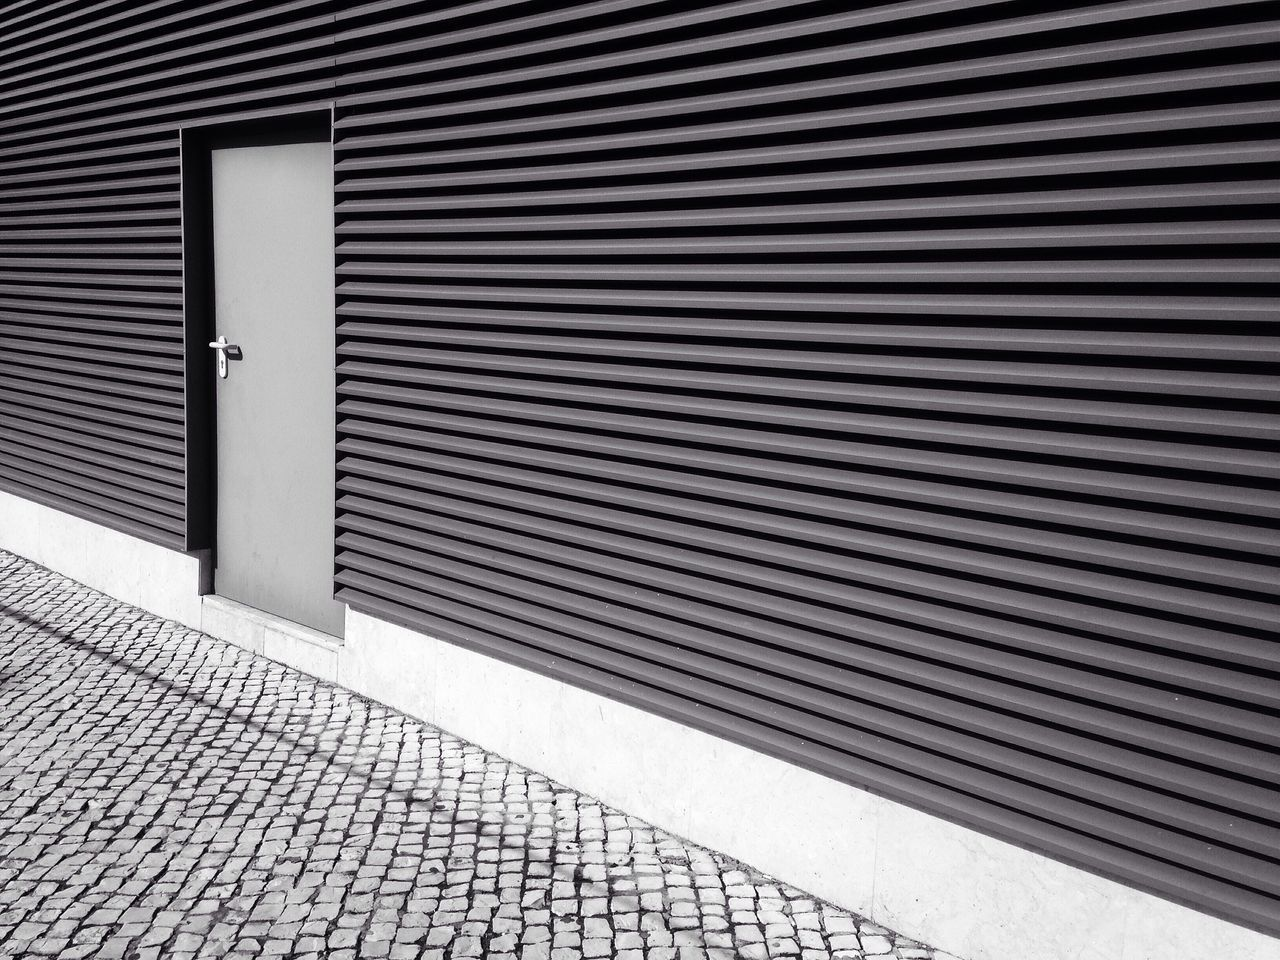 """""""Closed & locked"""" Bnw Photography Black And White Photography Bnw_collection Personal Perspective Architecture_collection Architecture_bw ArquiteturaeUrbanismo Architecturephotography Perspectives Eye4black&white EyeEm Best Shots - Black + White February2016 EyeEm Bnw The Week On Eyem Februaryphotochallenge February 2016 Leading Lines Lead Fine Art Fine Art Photography Fineart_photobw Fineart_photo The Architect - 2016 EyeEm Awards Welcome To Black"""